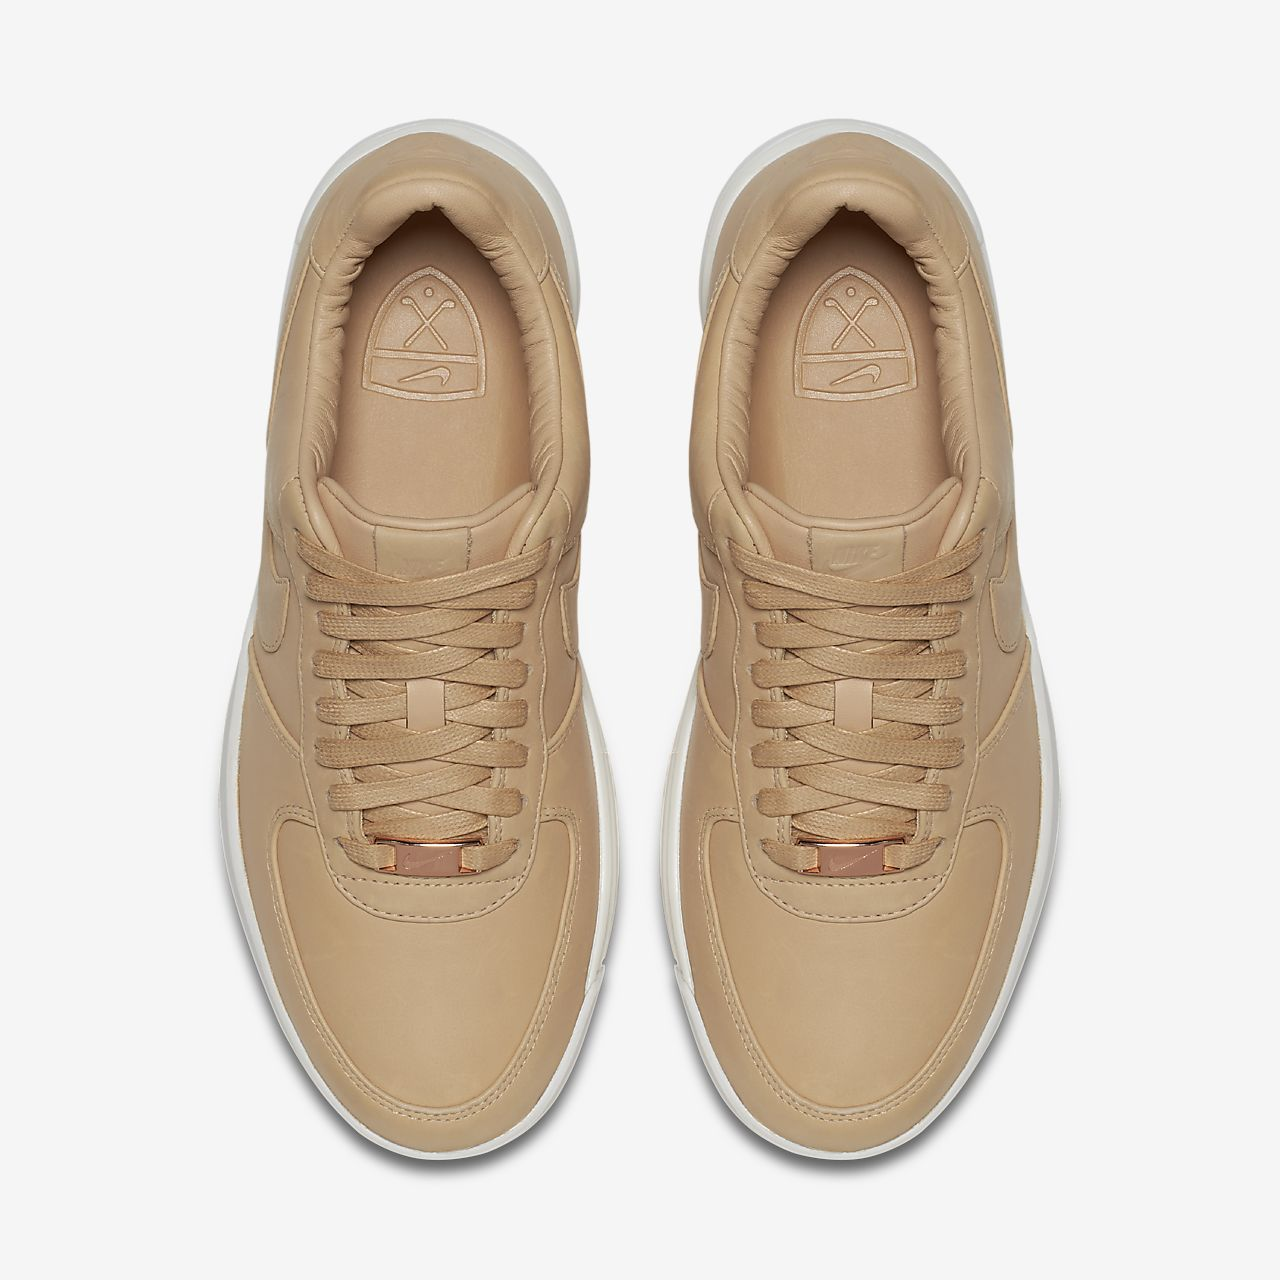 online store lowest price differently Nike Lunar Force 1 G Premium Men's Golf Shoe